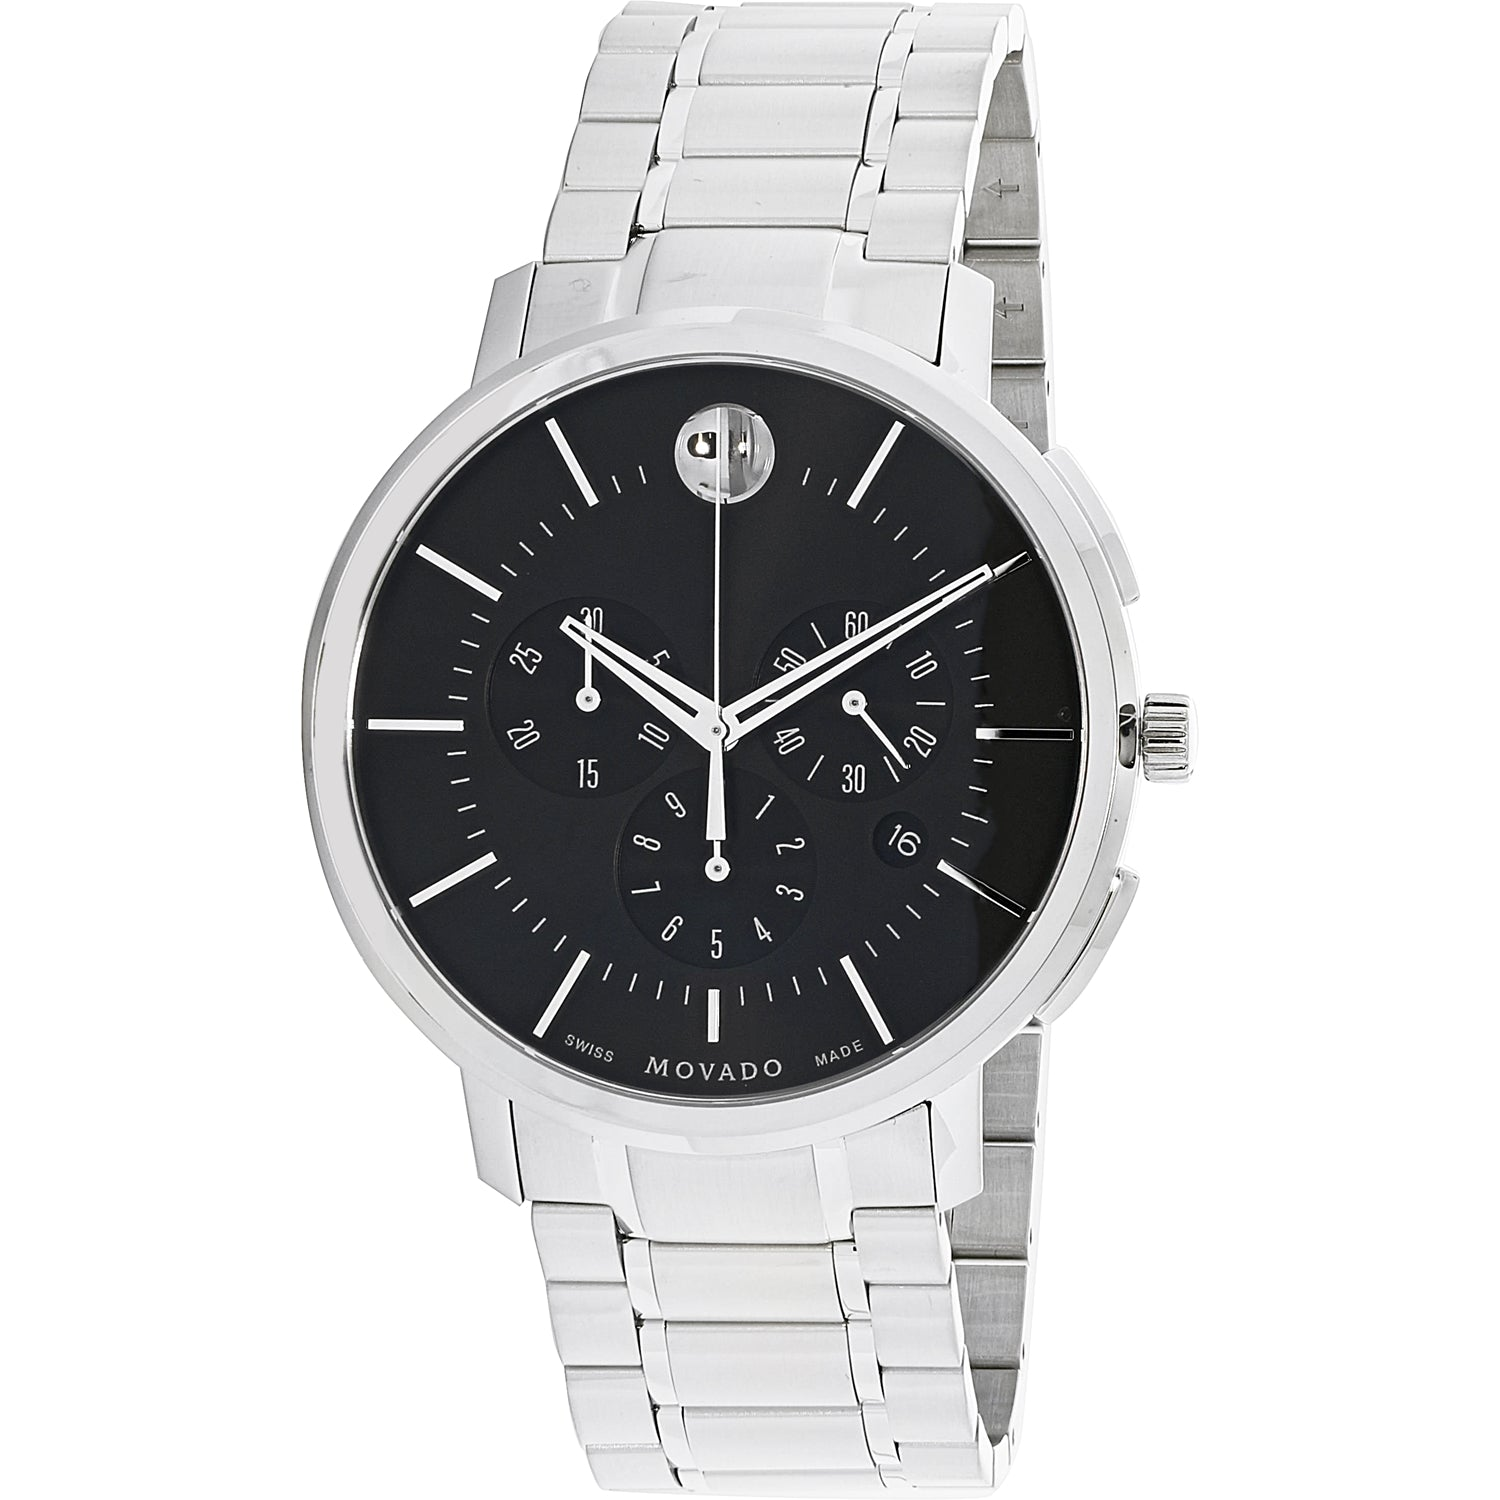 Movado Men's Analog Display Swiss Quartz Watch